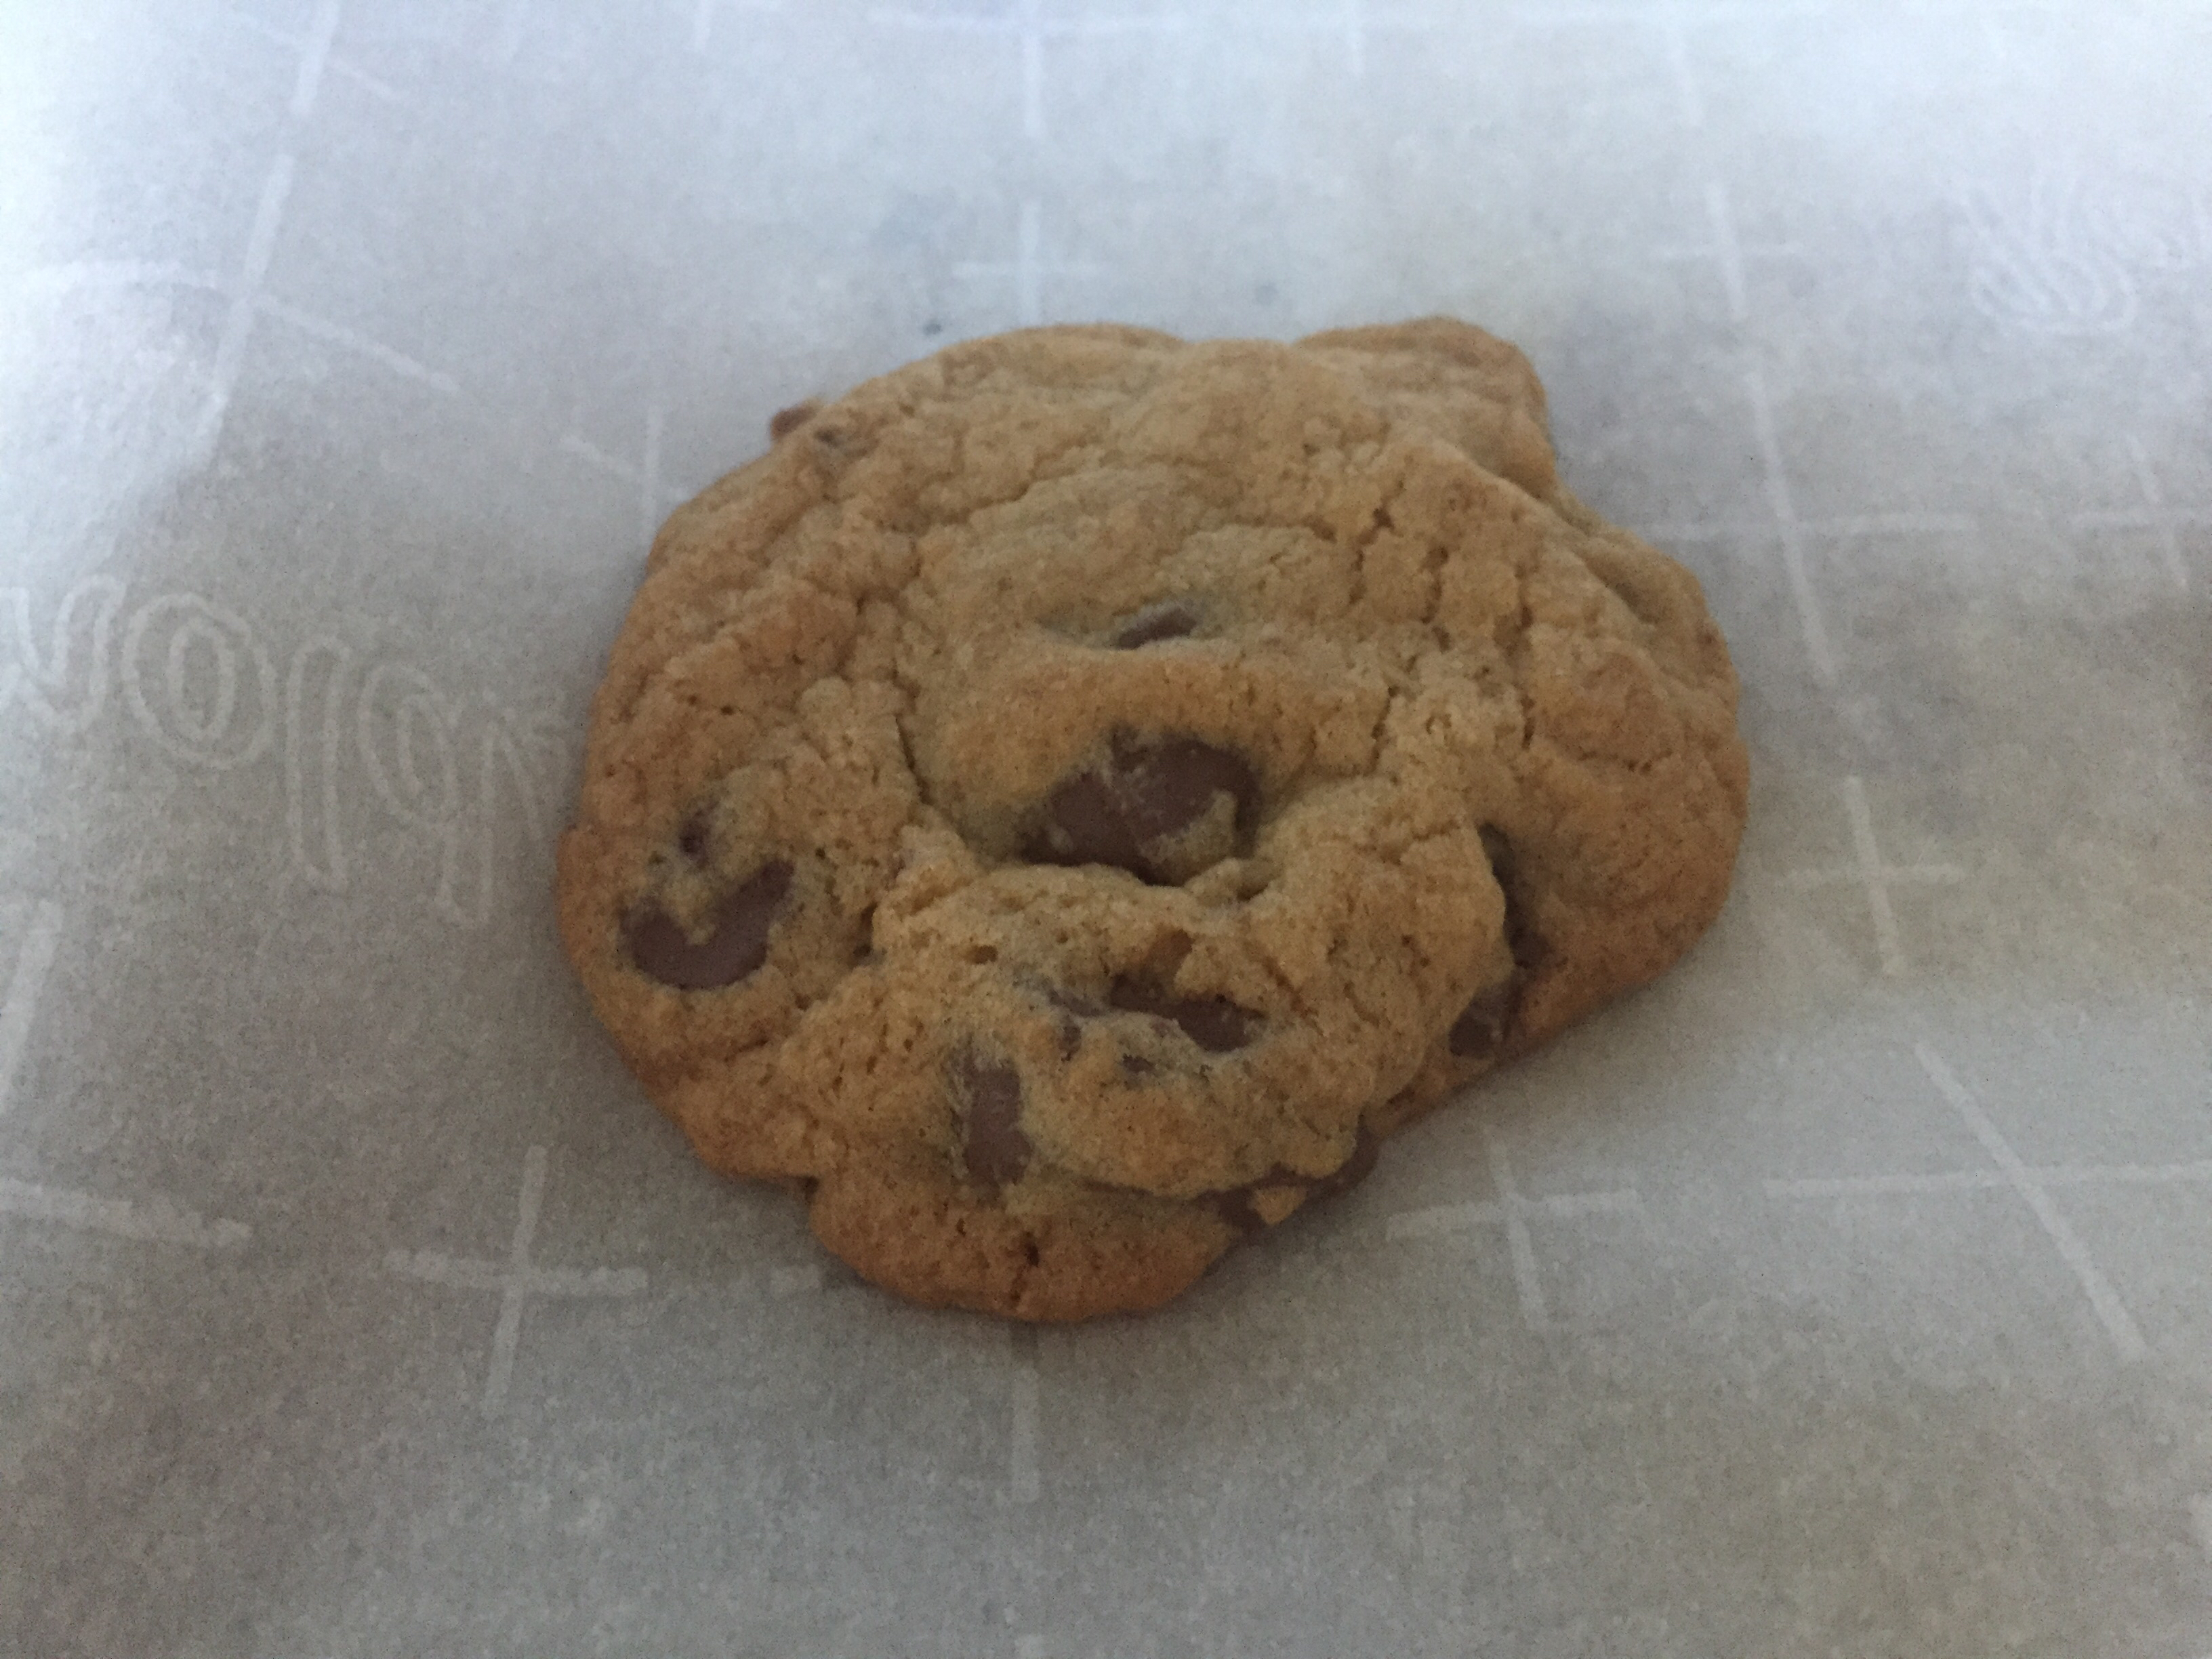 Original Nestle® Toll House Chocolate Chip Cookies Emily A Field